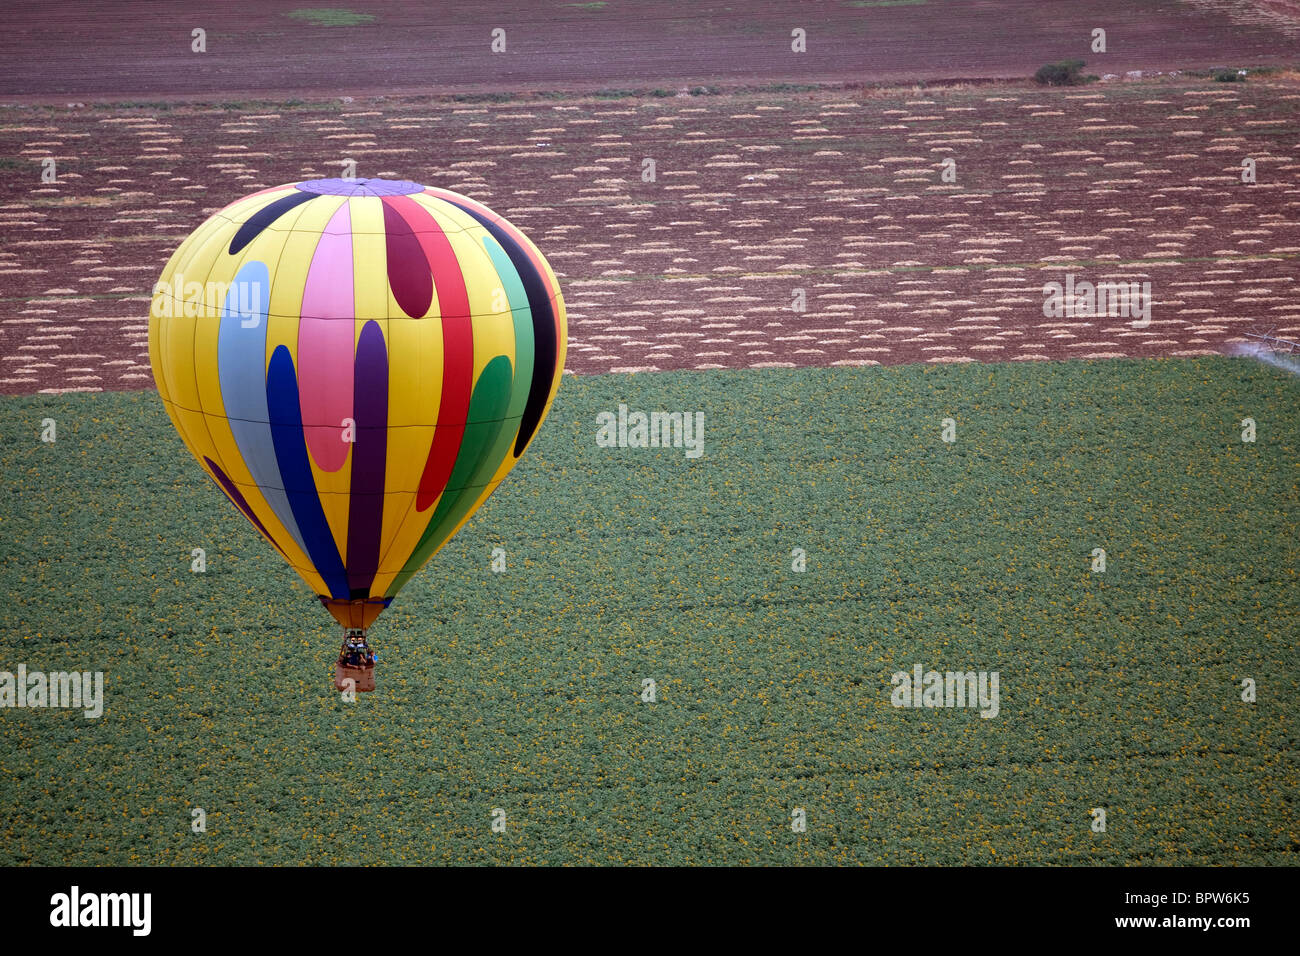 A hot air balloon above fields landscape - Stock Image